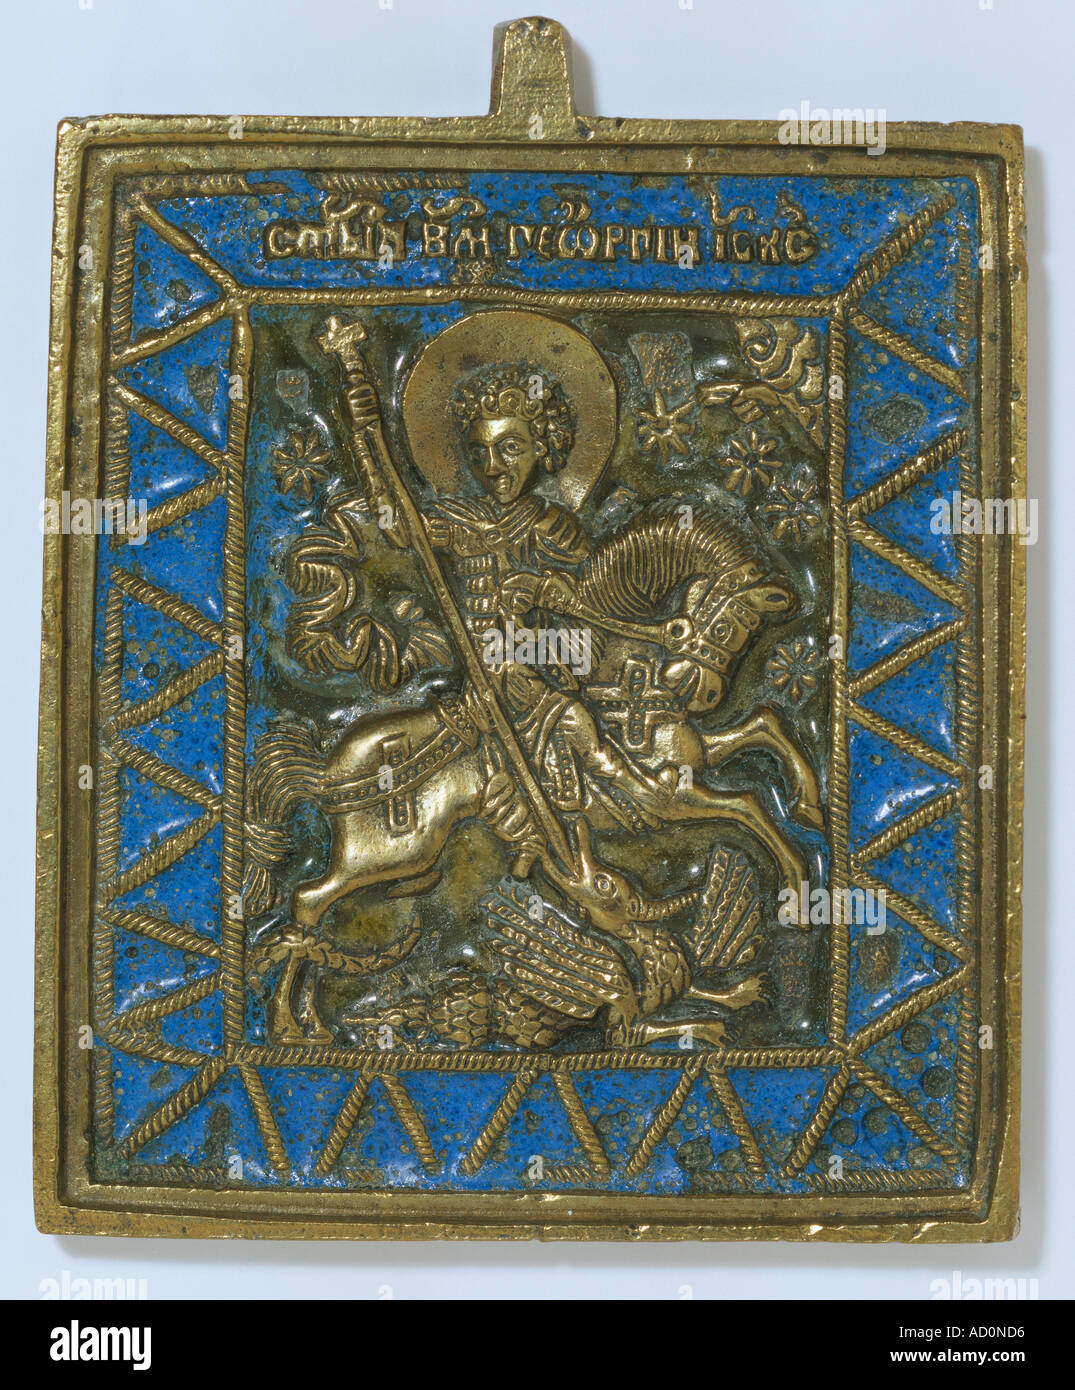 Icon of St George and the Dragon. Russia, 18th-19th century. - Stock Image